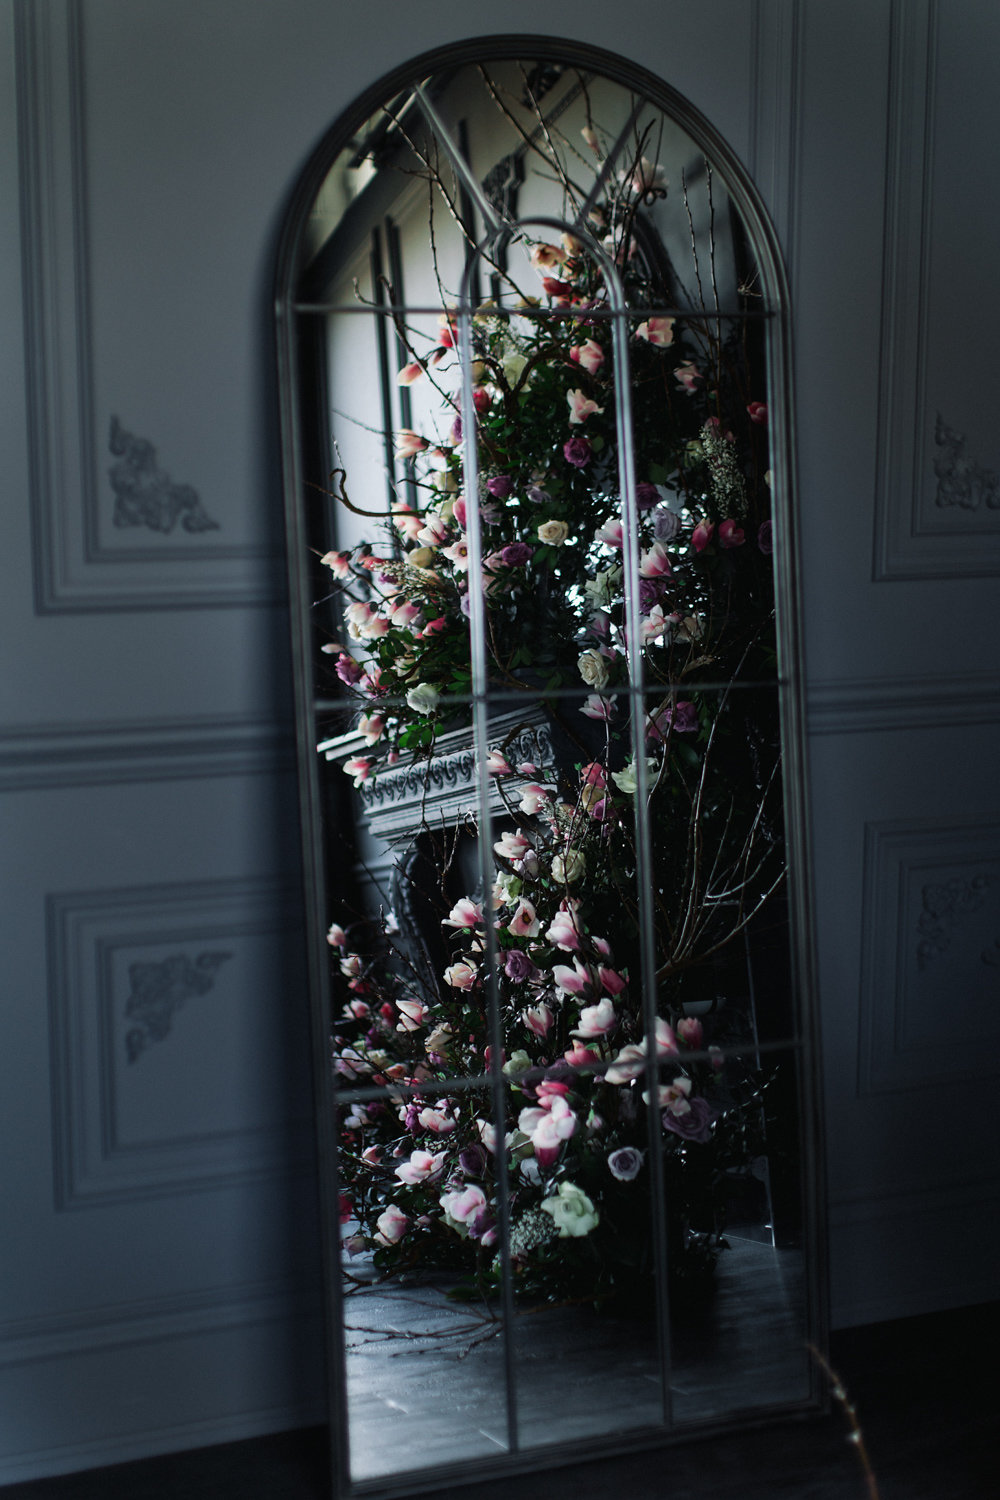 August In Bloom - Floor-length mirror - Magnolia Dreams (The Bridal Affair)